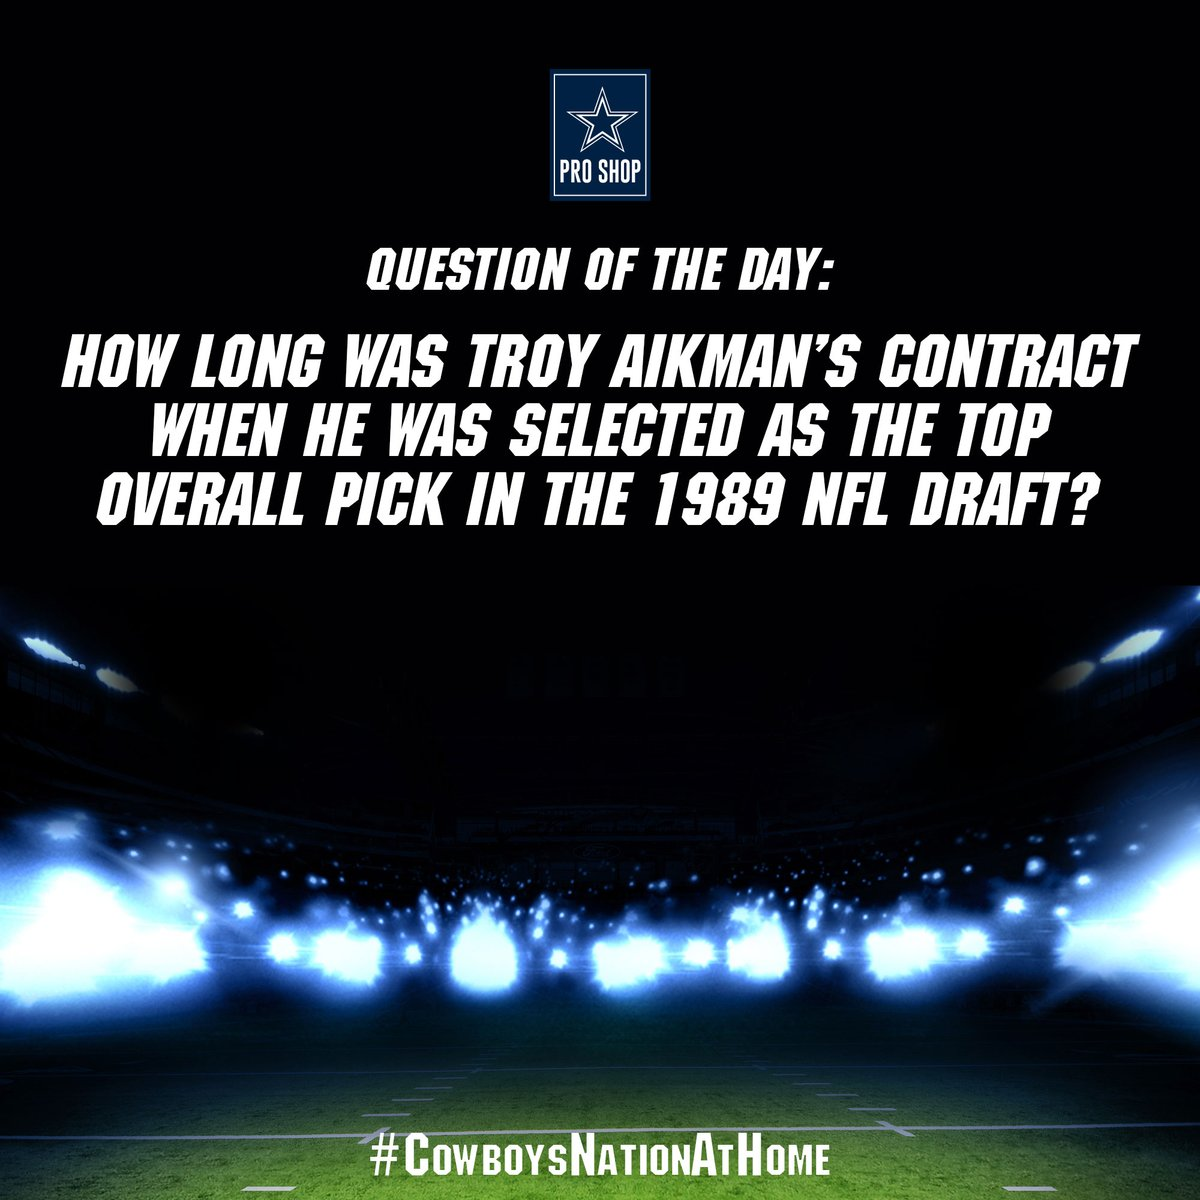 #CowboysNationAtHome | Question of the Day  How long was Troy Aikman's first #DallasCowboys contract? 📃  Reply here with your best guess #CowboysNation! Get it right & you could receive a surprise Pro Shop gift! https://t.co/XqHo1qDCYB